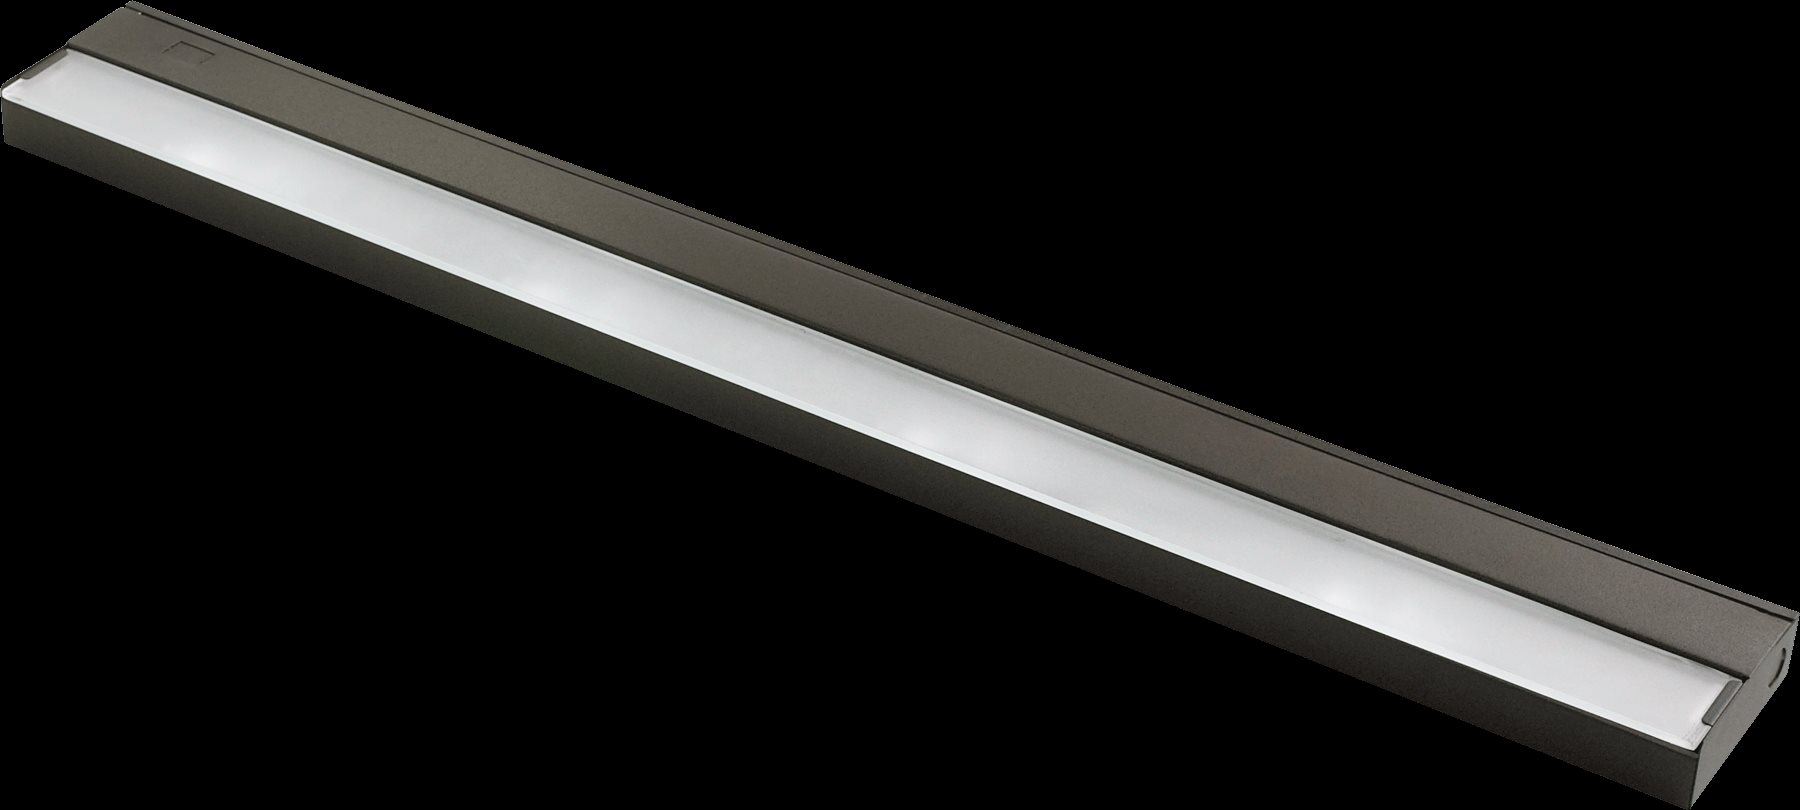 Xenon Ceiling Lights : Quorum lighting quot xenon under cabinet light